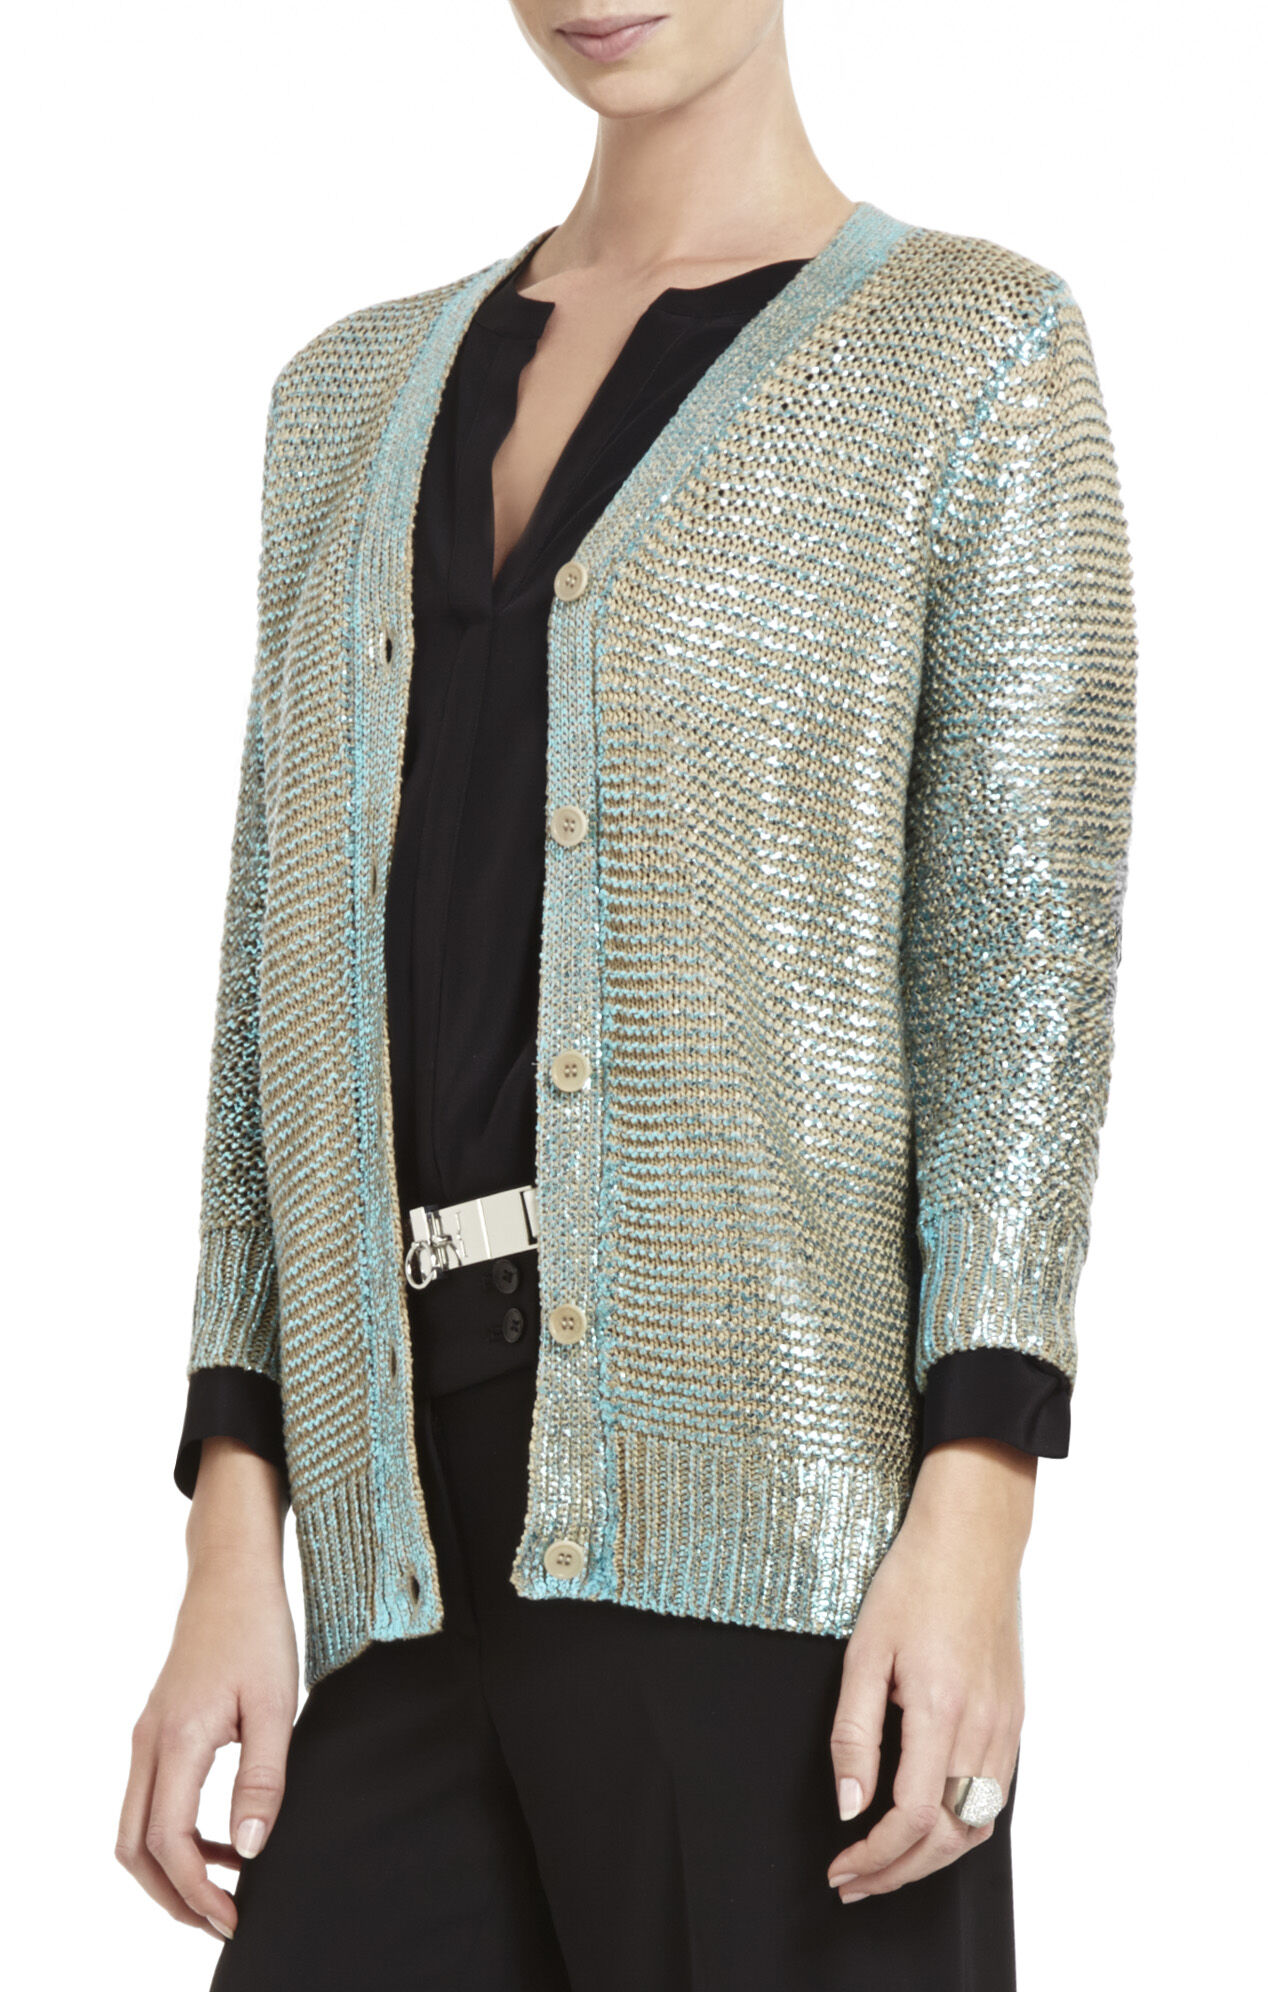 Find great deals on eBay for print cardigan. Shop with confidence.